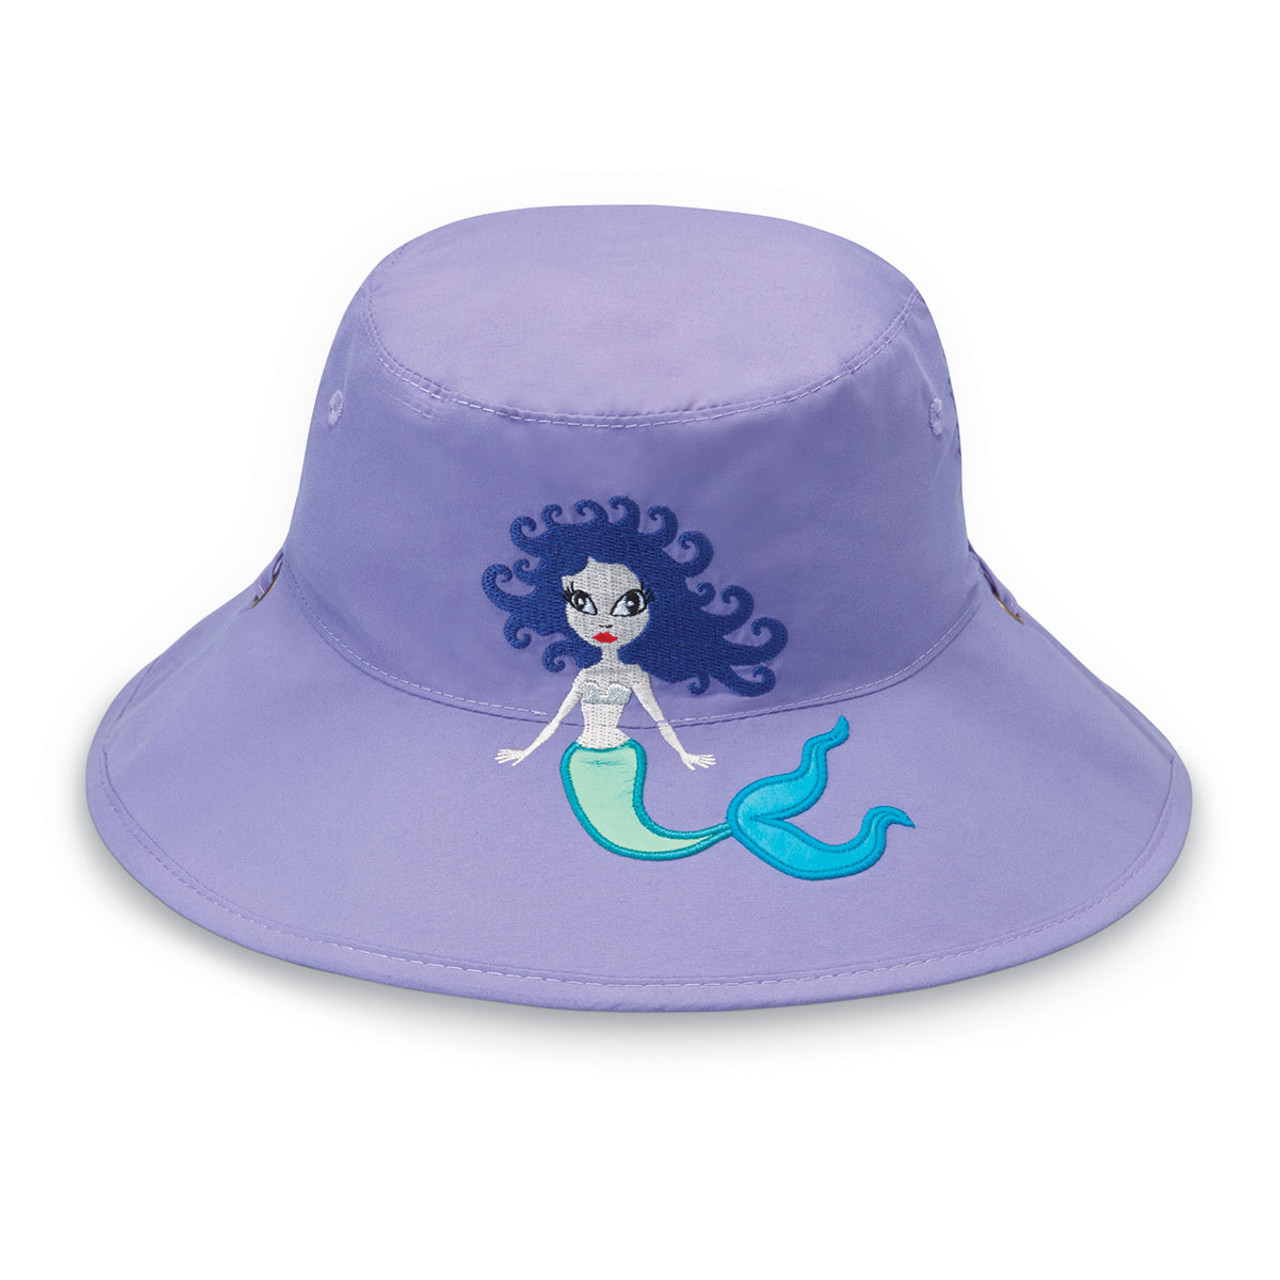 37335ca5701 Wallaroo Girl s UPF50+ Mermaid Bucket Sun hat